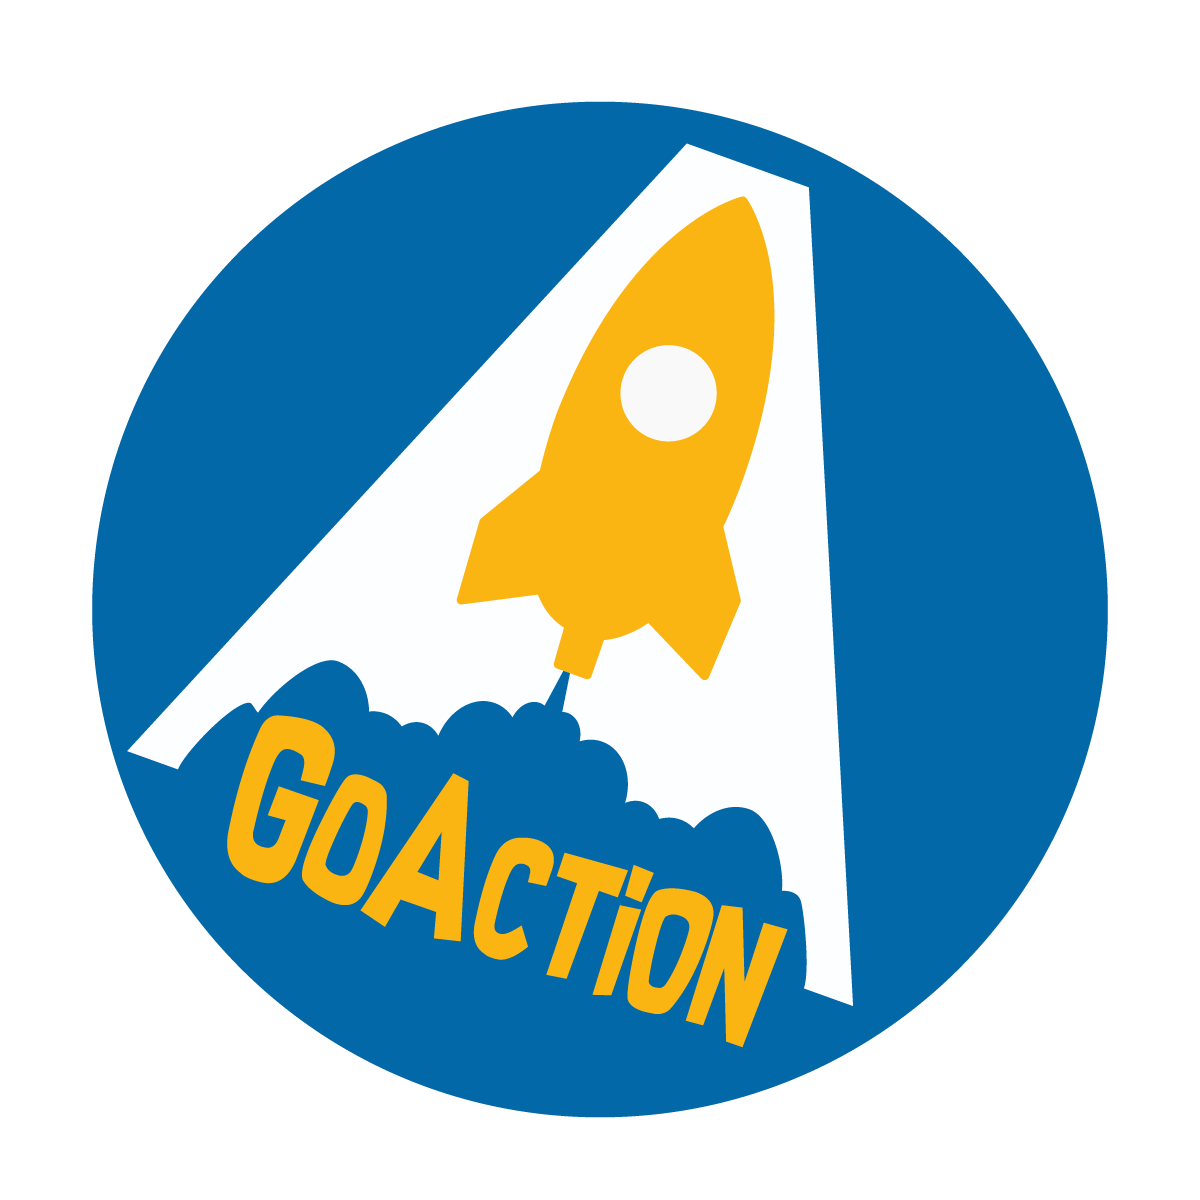 GoAction